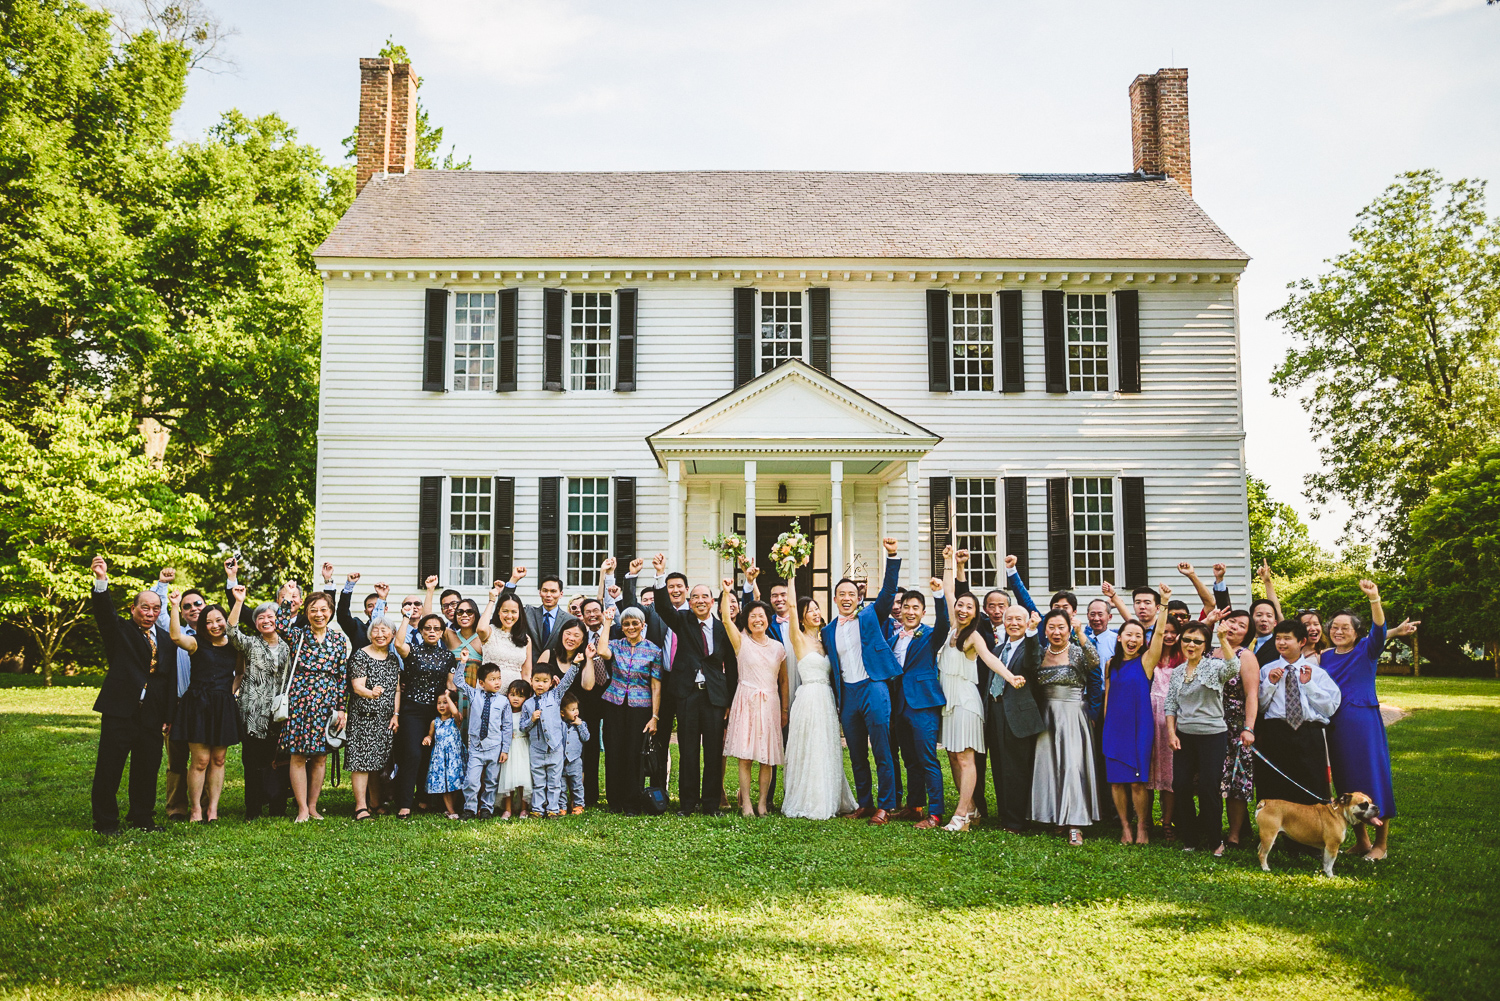 039 - whole wedding family portrait virginia wedding.jpg